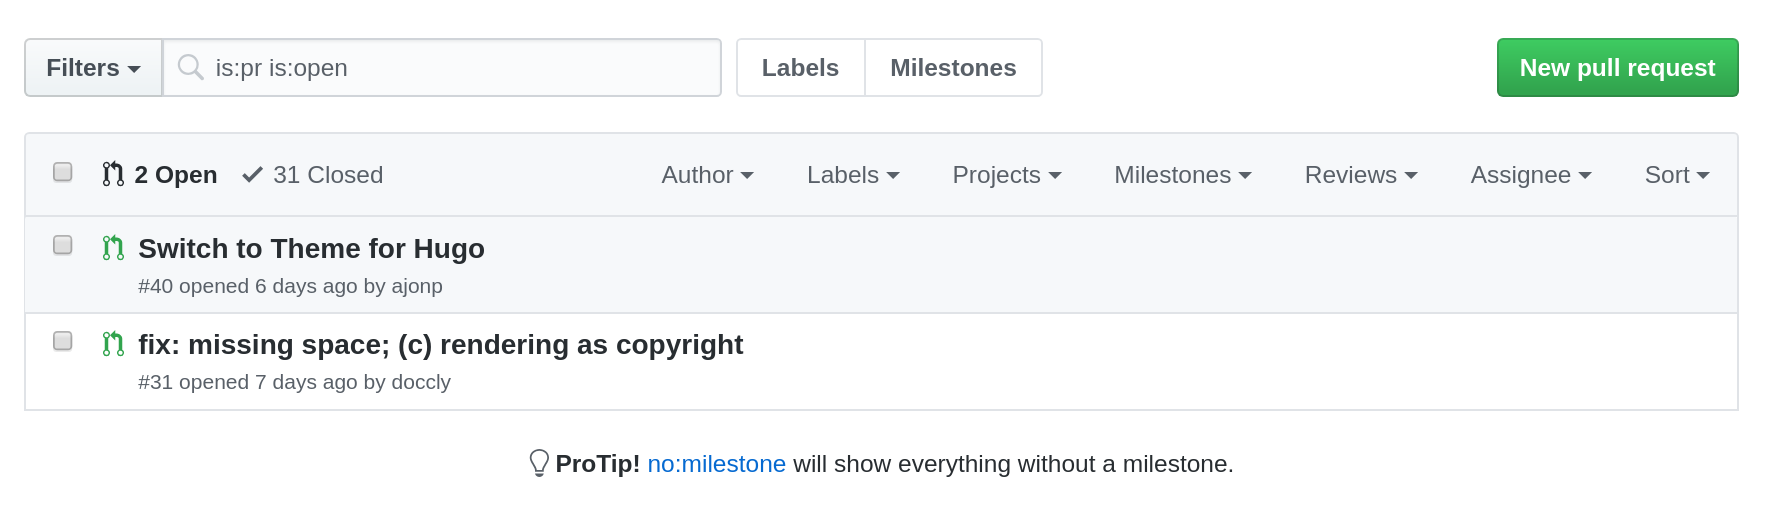 How to Participate on Github